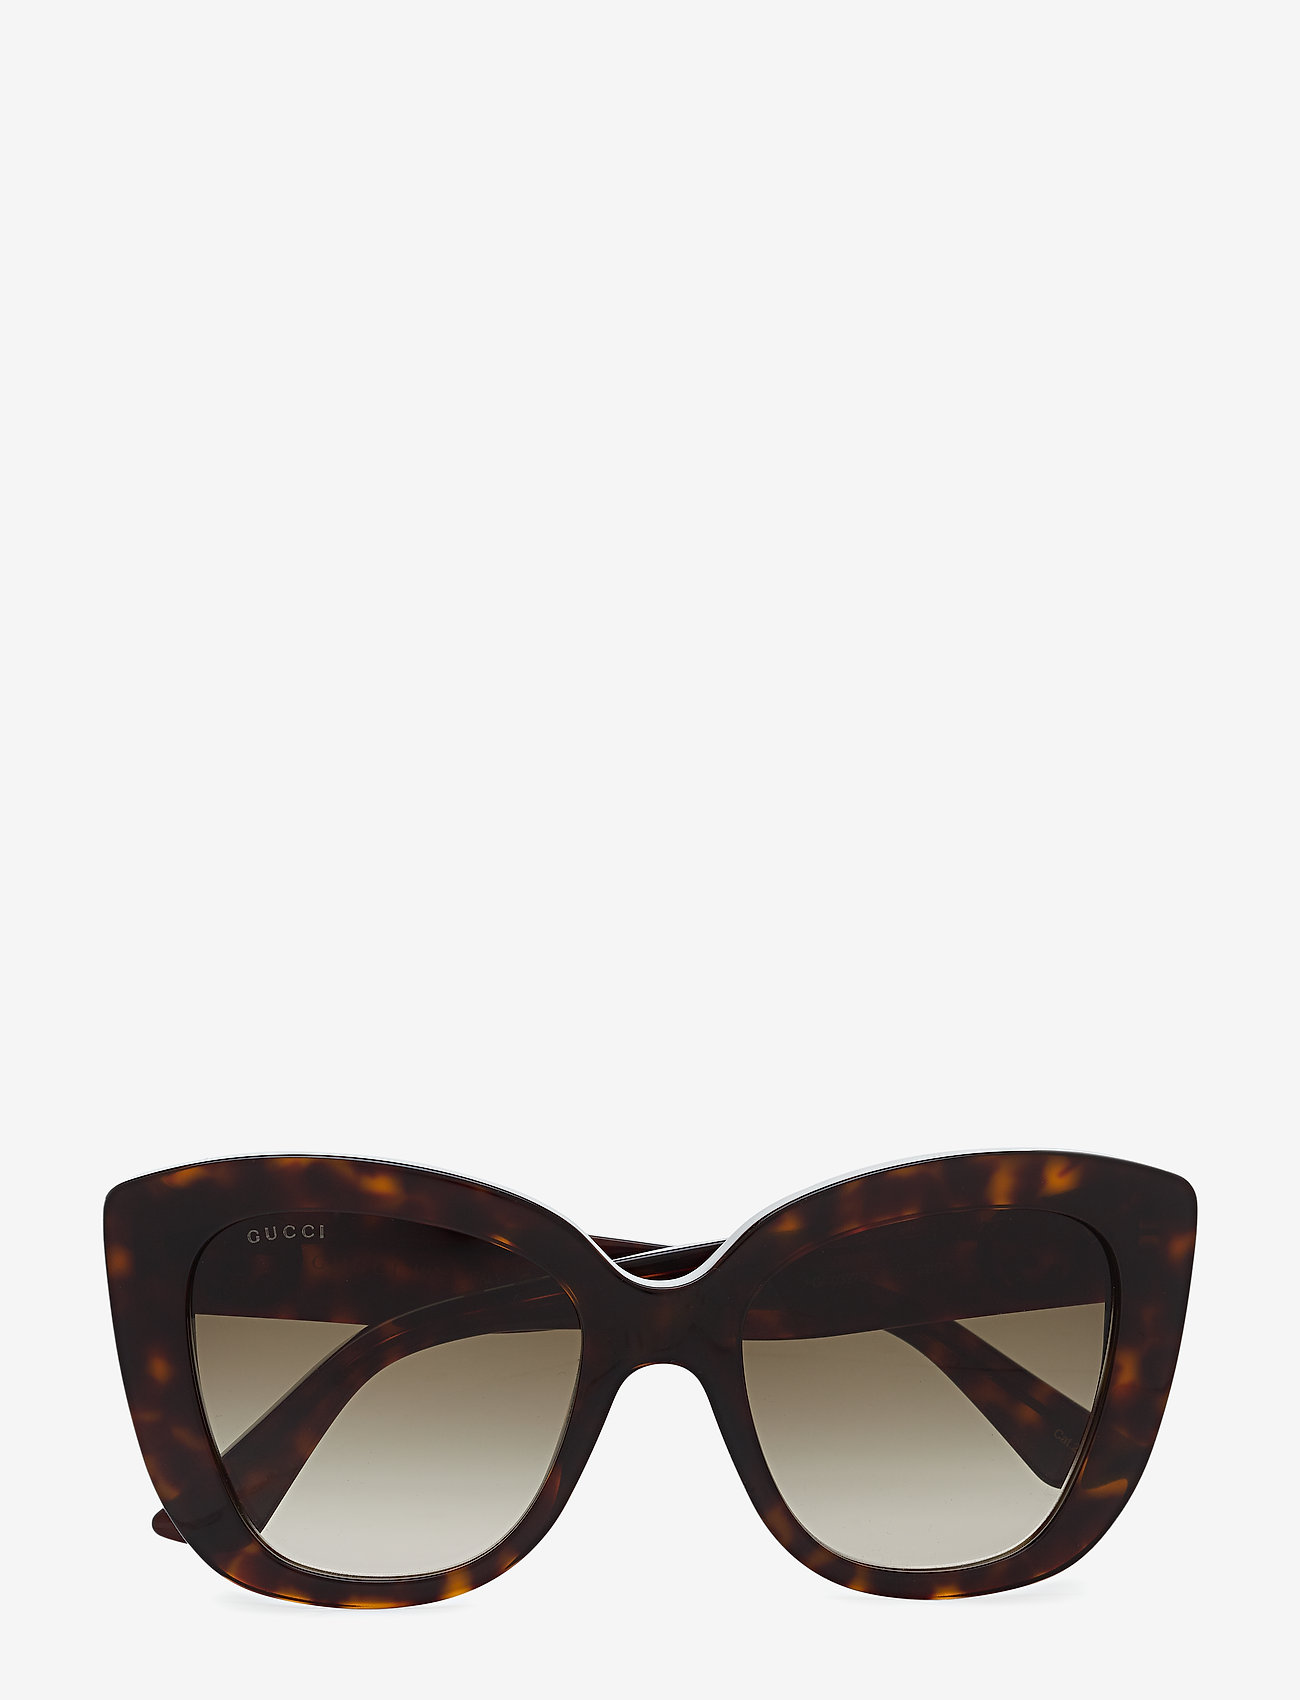 Gucci Sunglasses - GG0327S - cat-eye - havana-havana-brown - 0